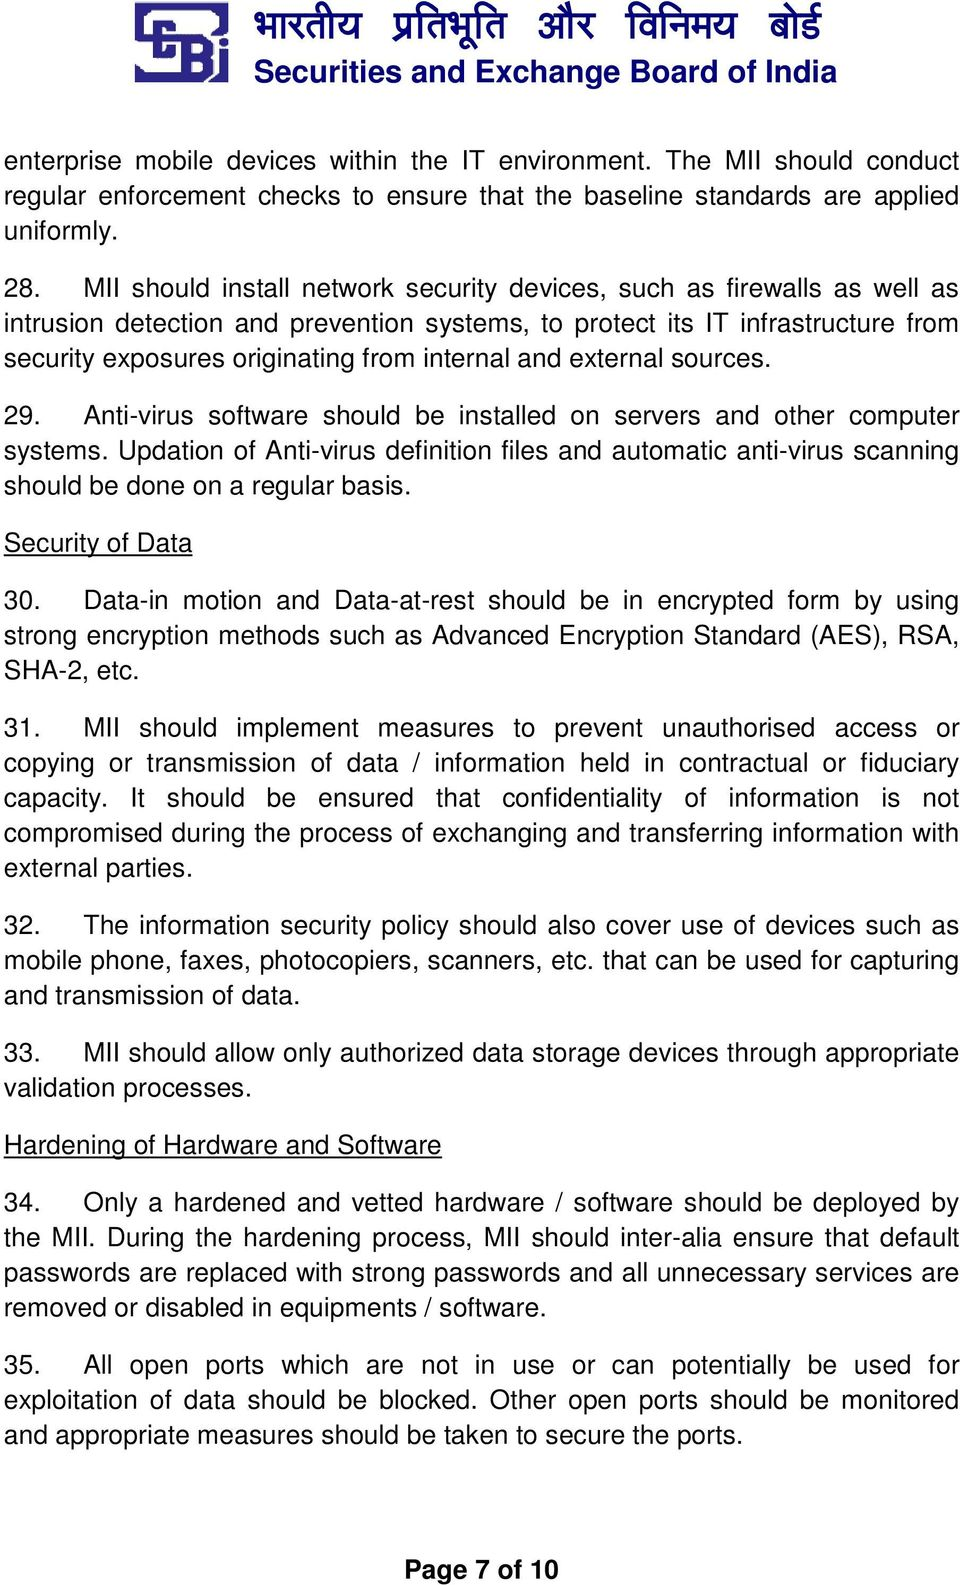 internal and external sources. 29. Anti-virus software should be installed on servers and other computer systems.